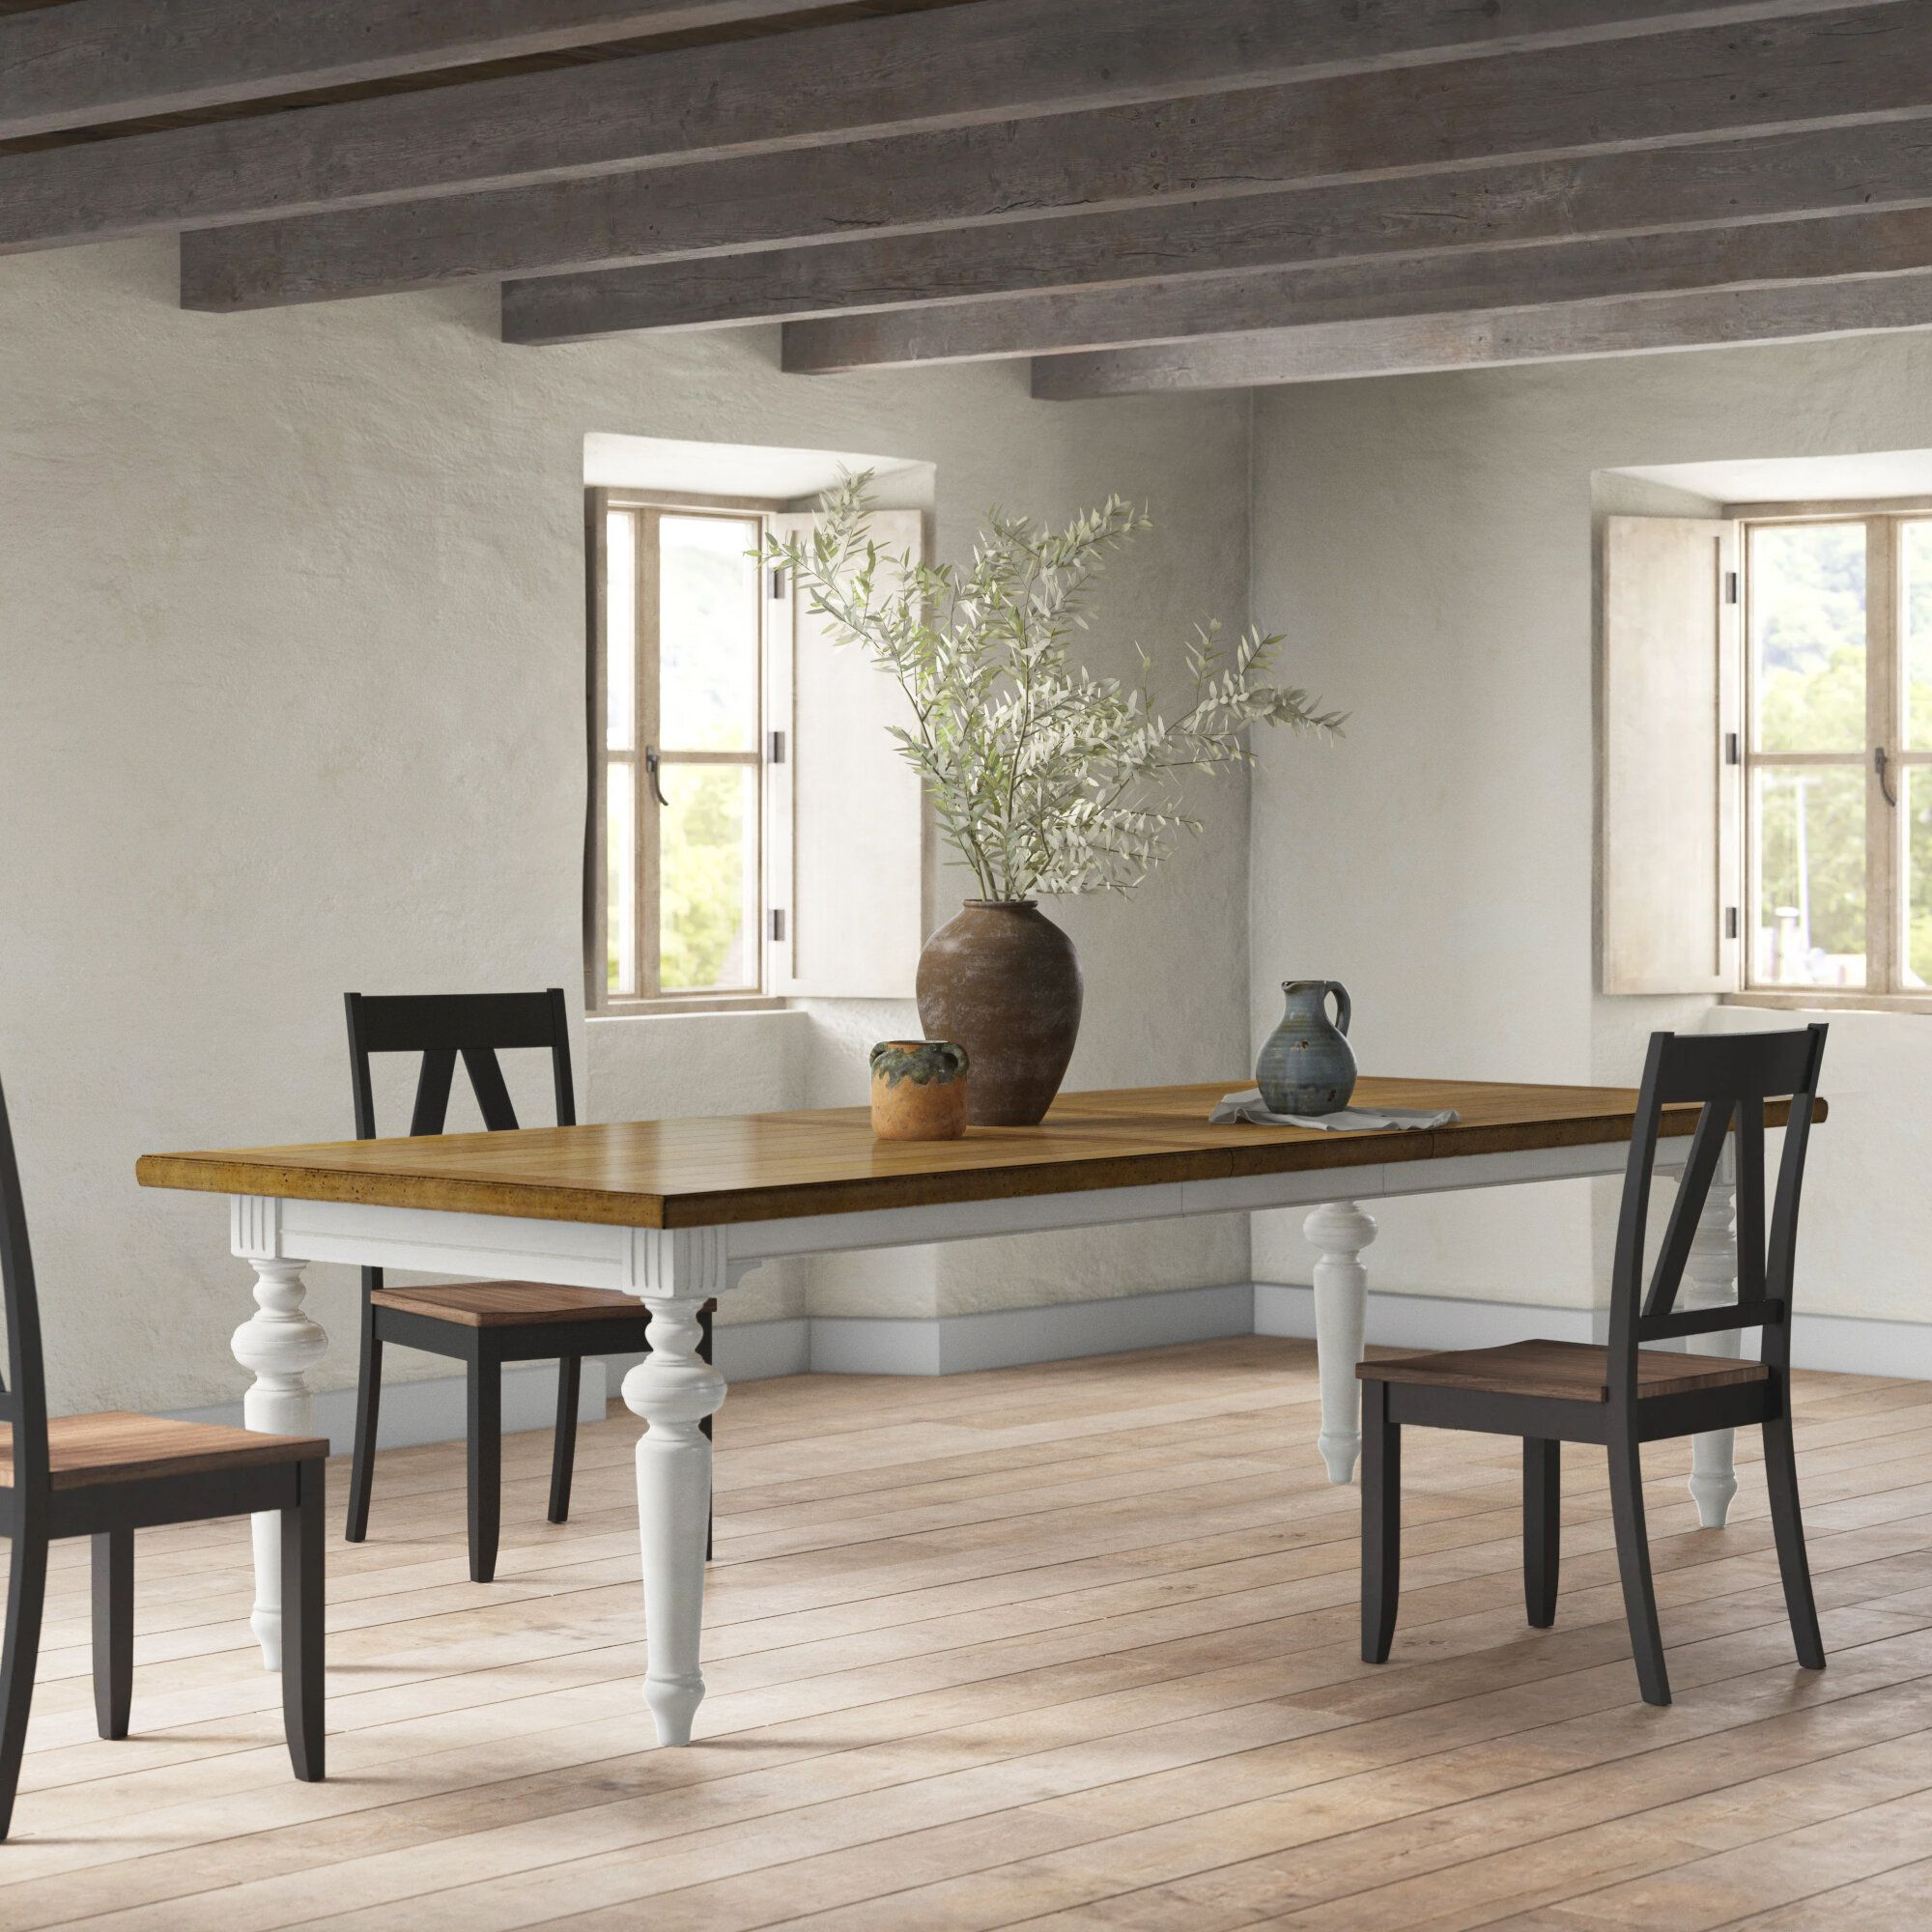 Extendable Dining Tables To Fit Every Space, Deals On Dining Room Tables